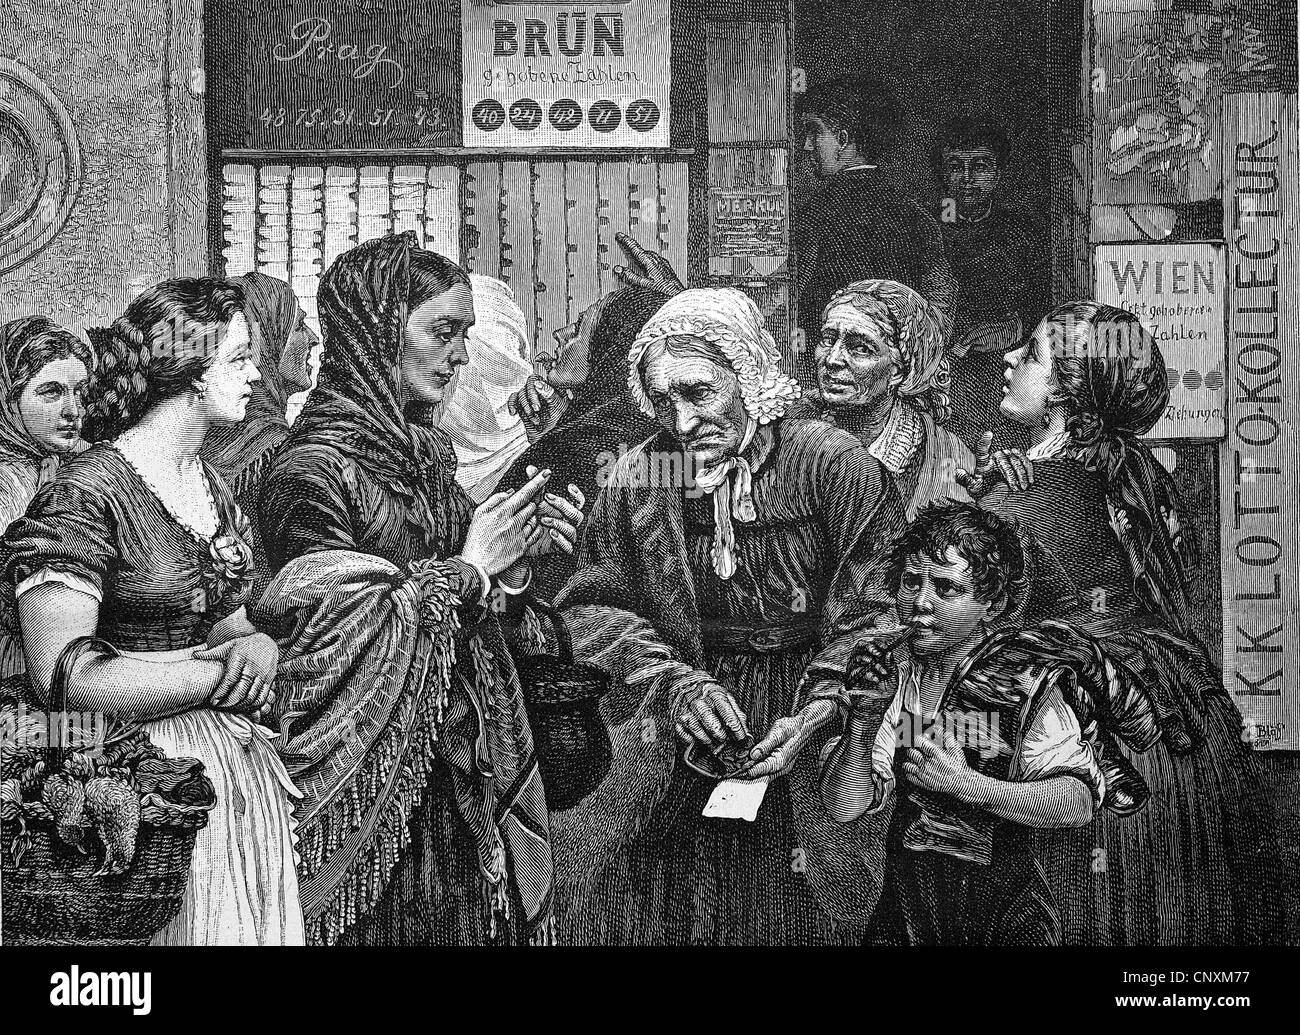 Lotto players, historical engraving, 1883 - Stock Image